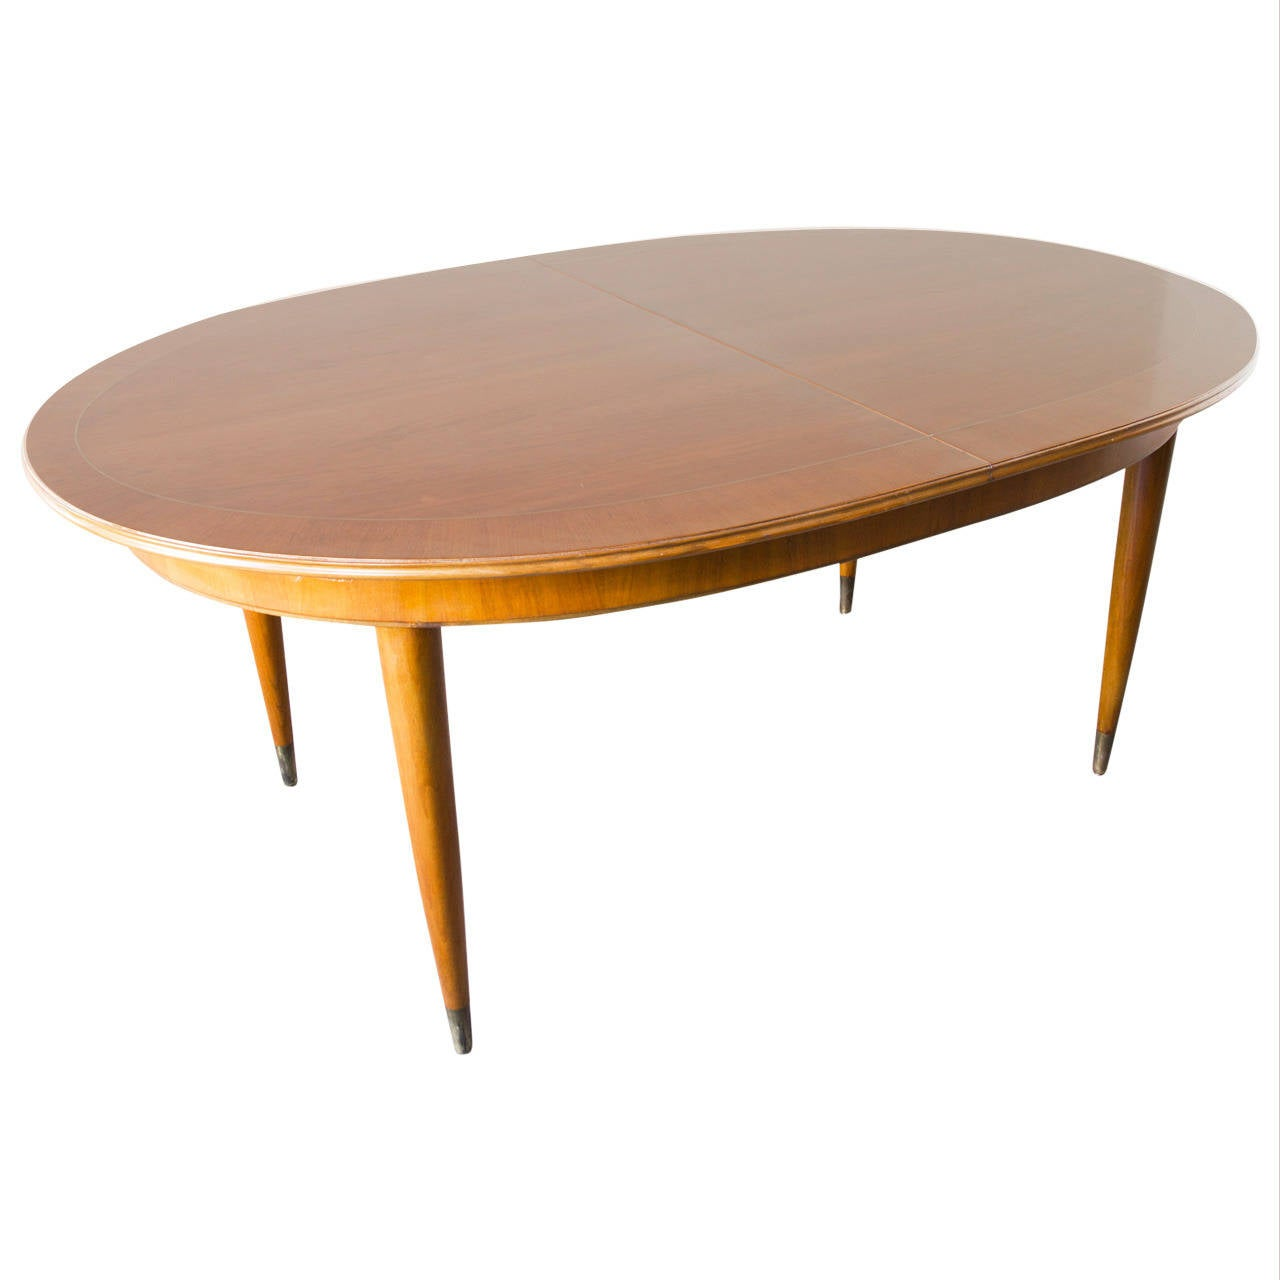 oval dining tables with extensions inlaid oval extension table at 1stdibs 7251